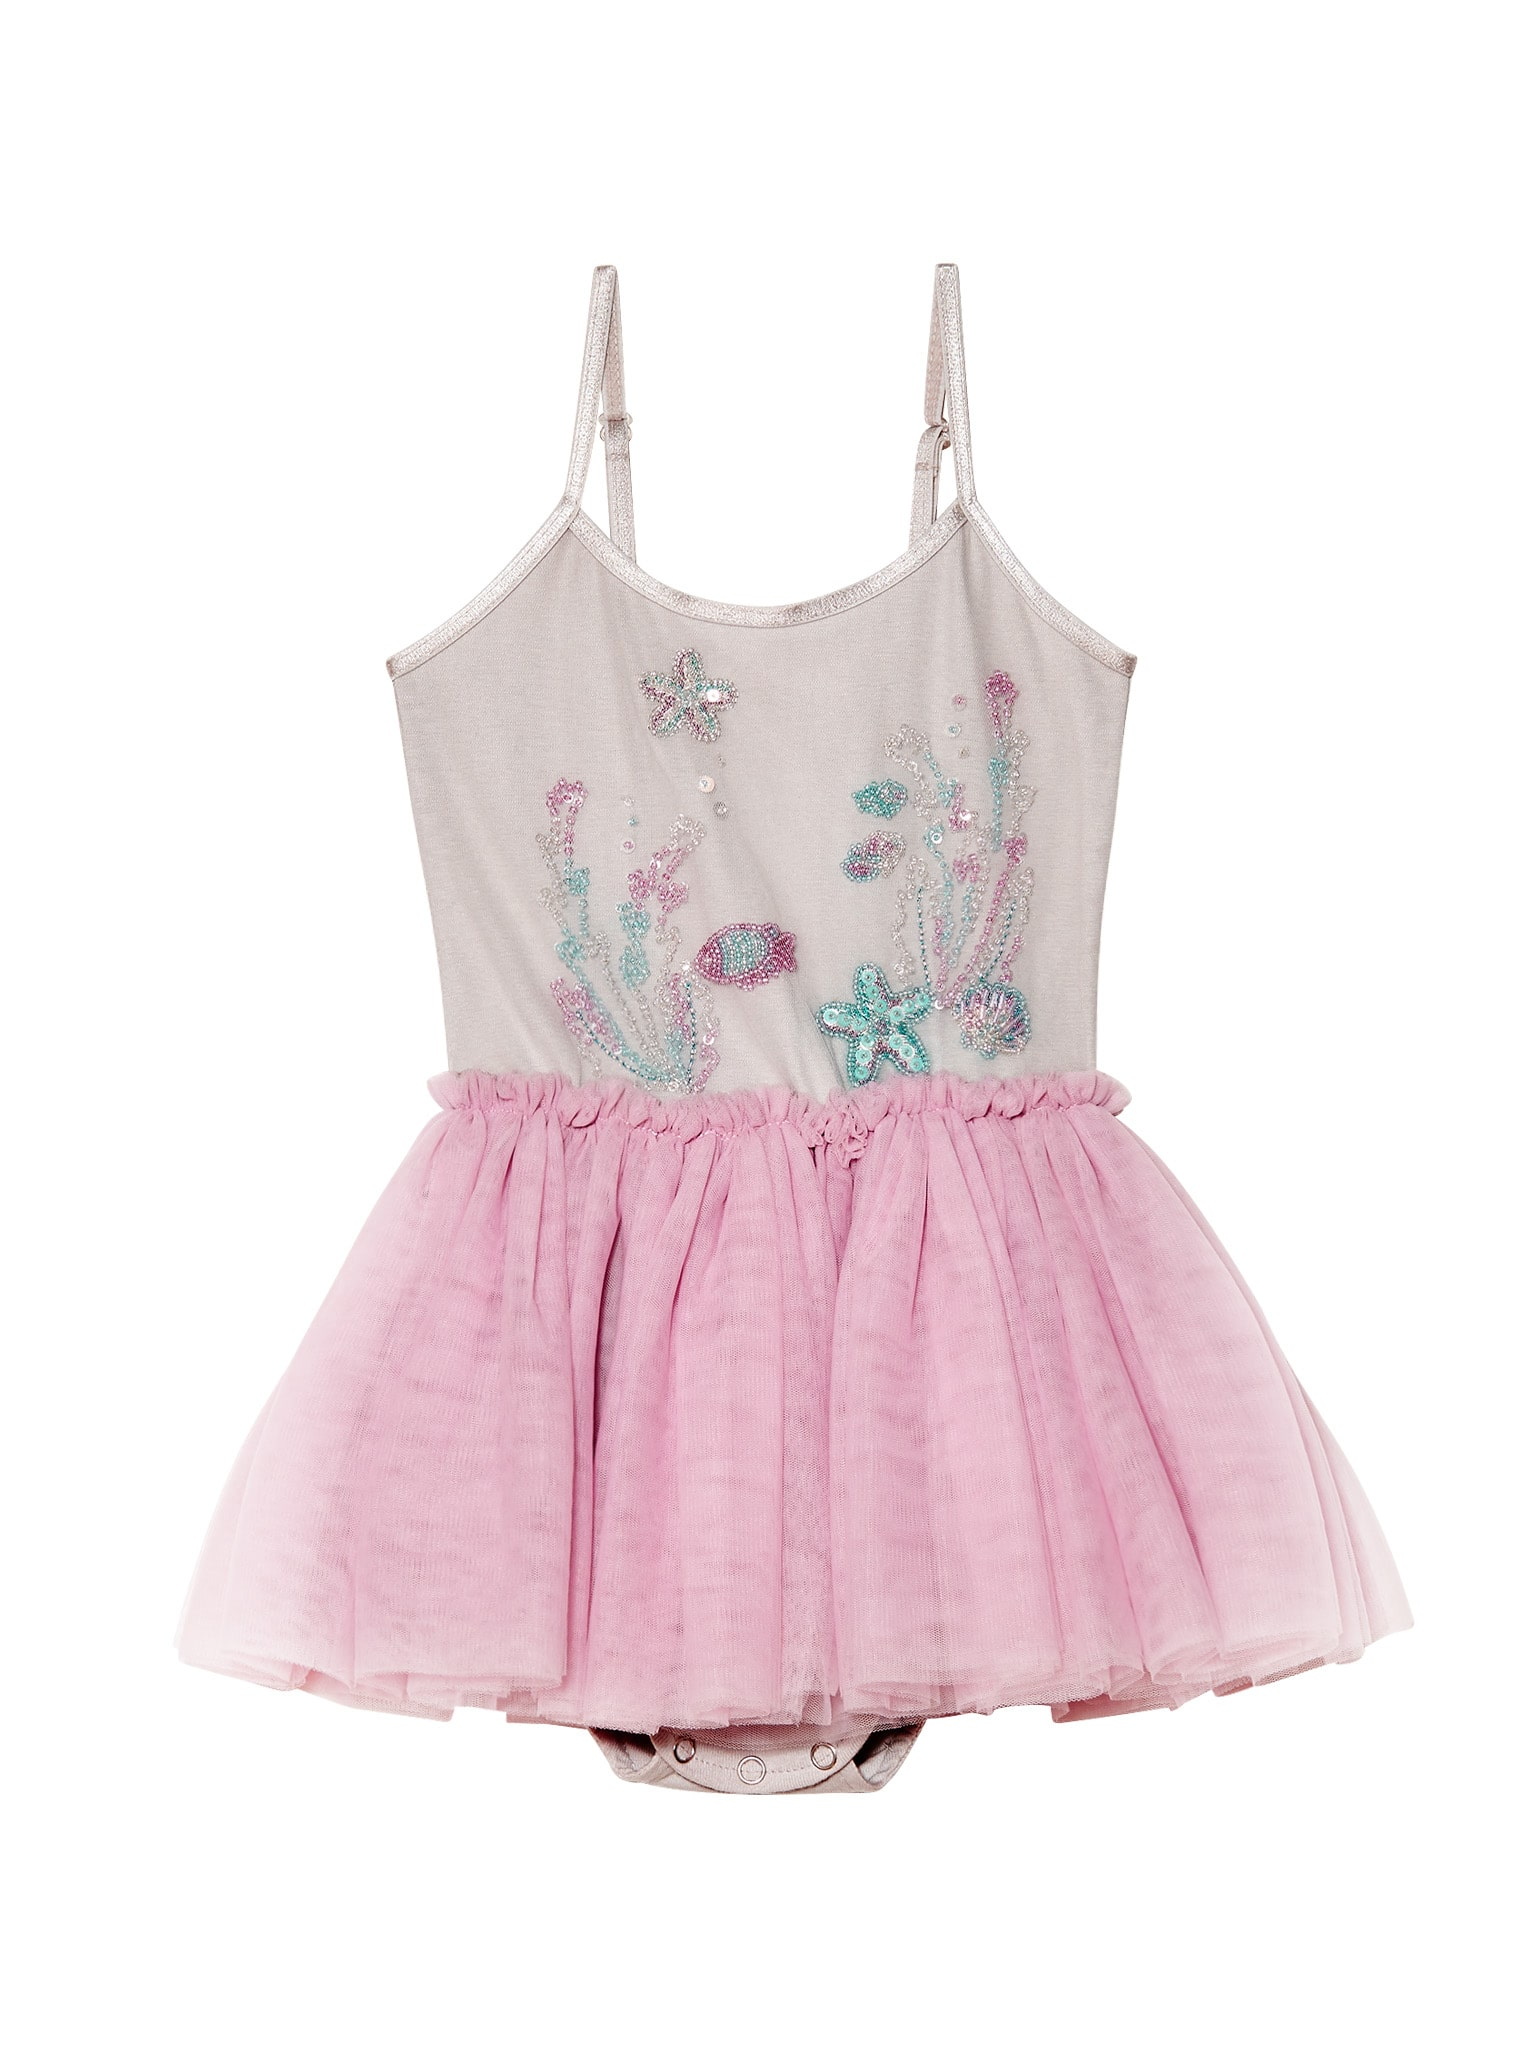 Tdm4234 bebe treasure cove tutu dress 01 min